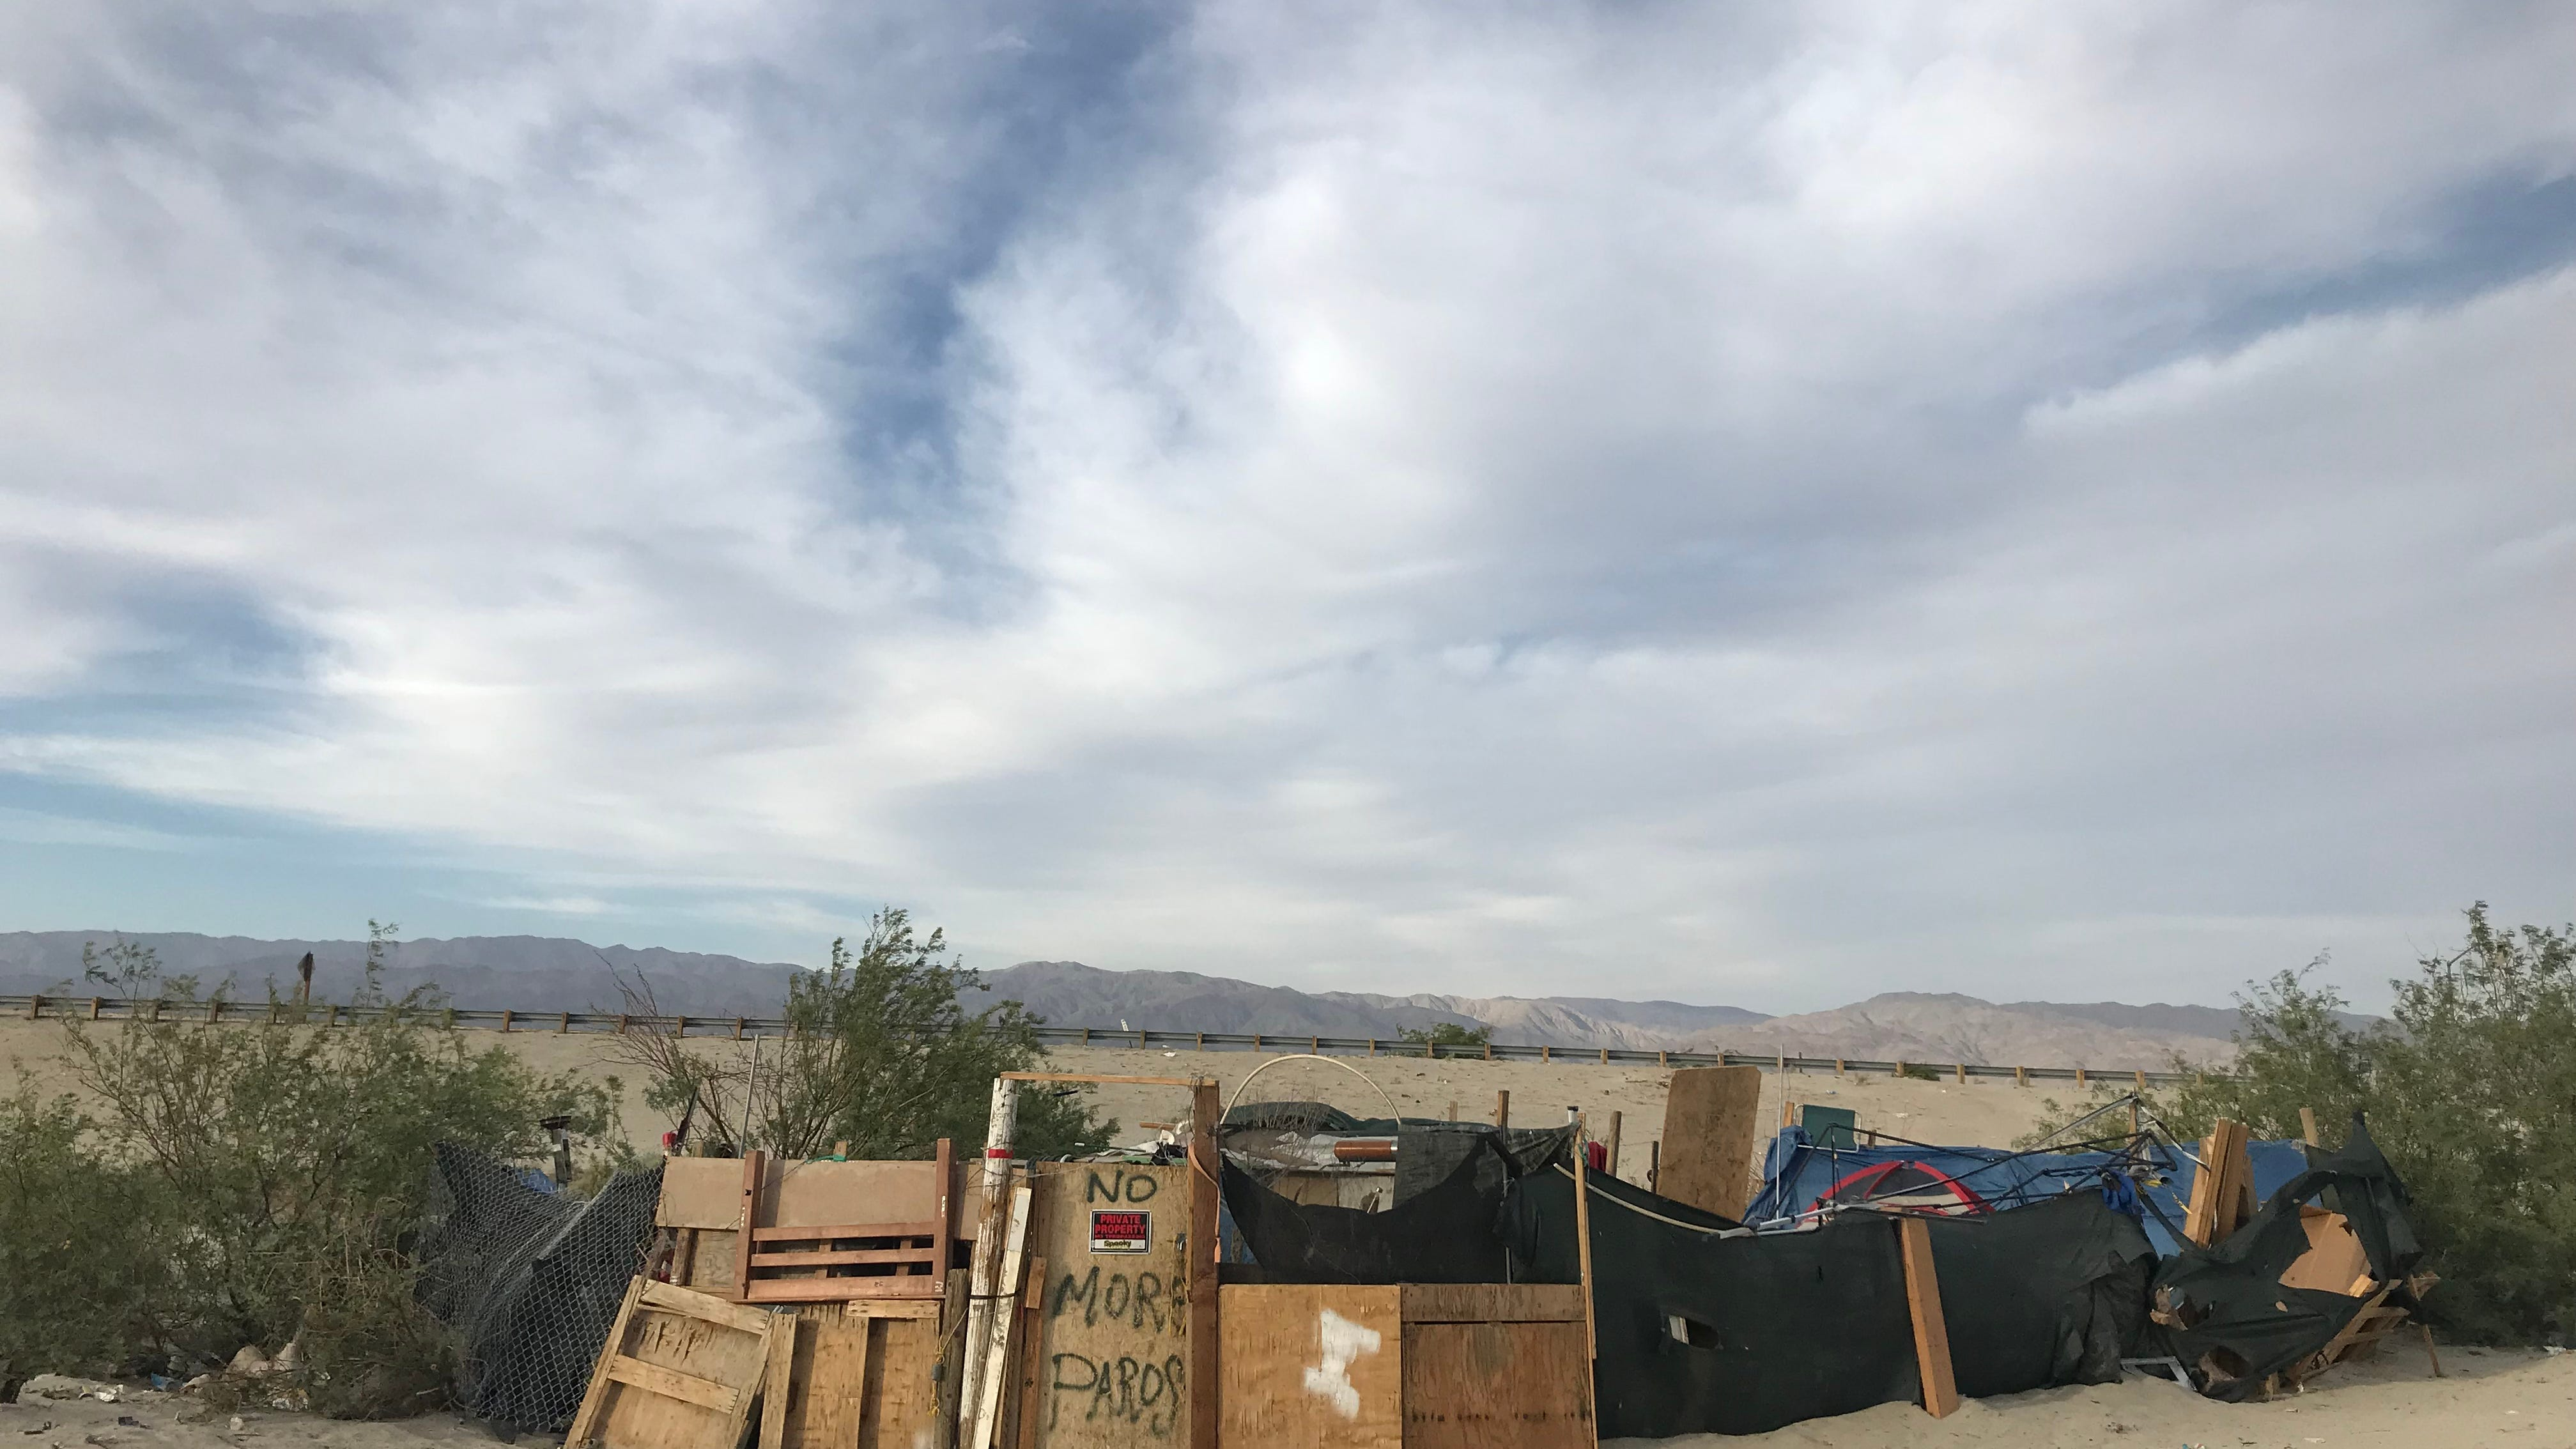 Help us investigate Coachella Valley homelessness. Tell us what you want to know